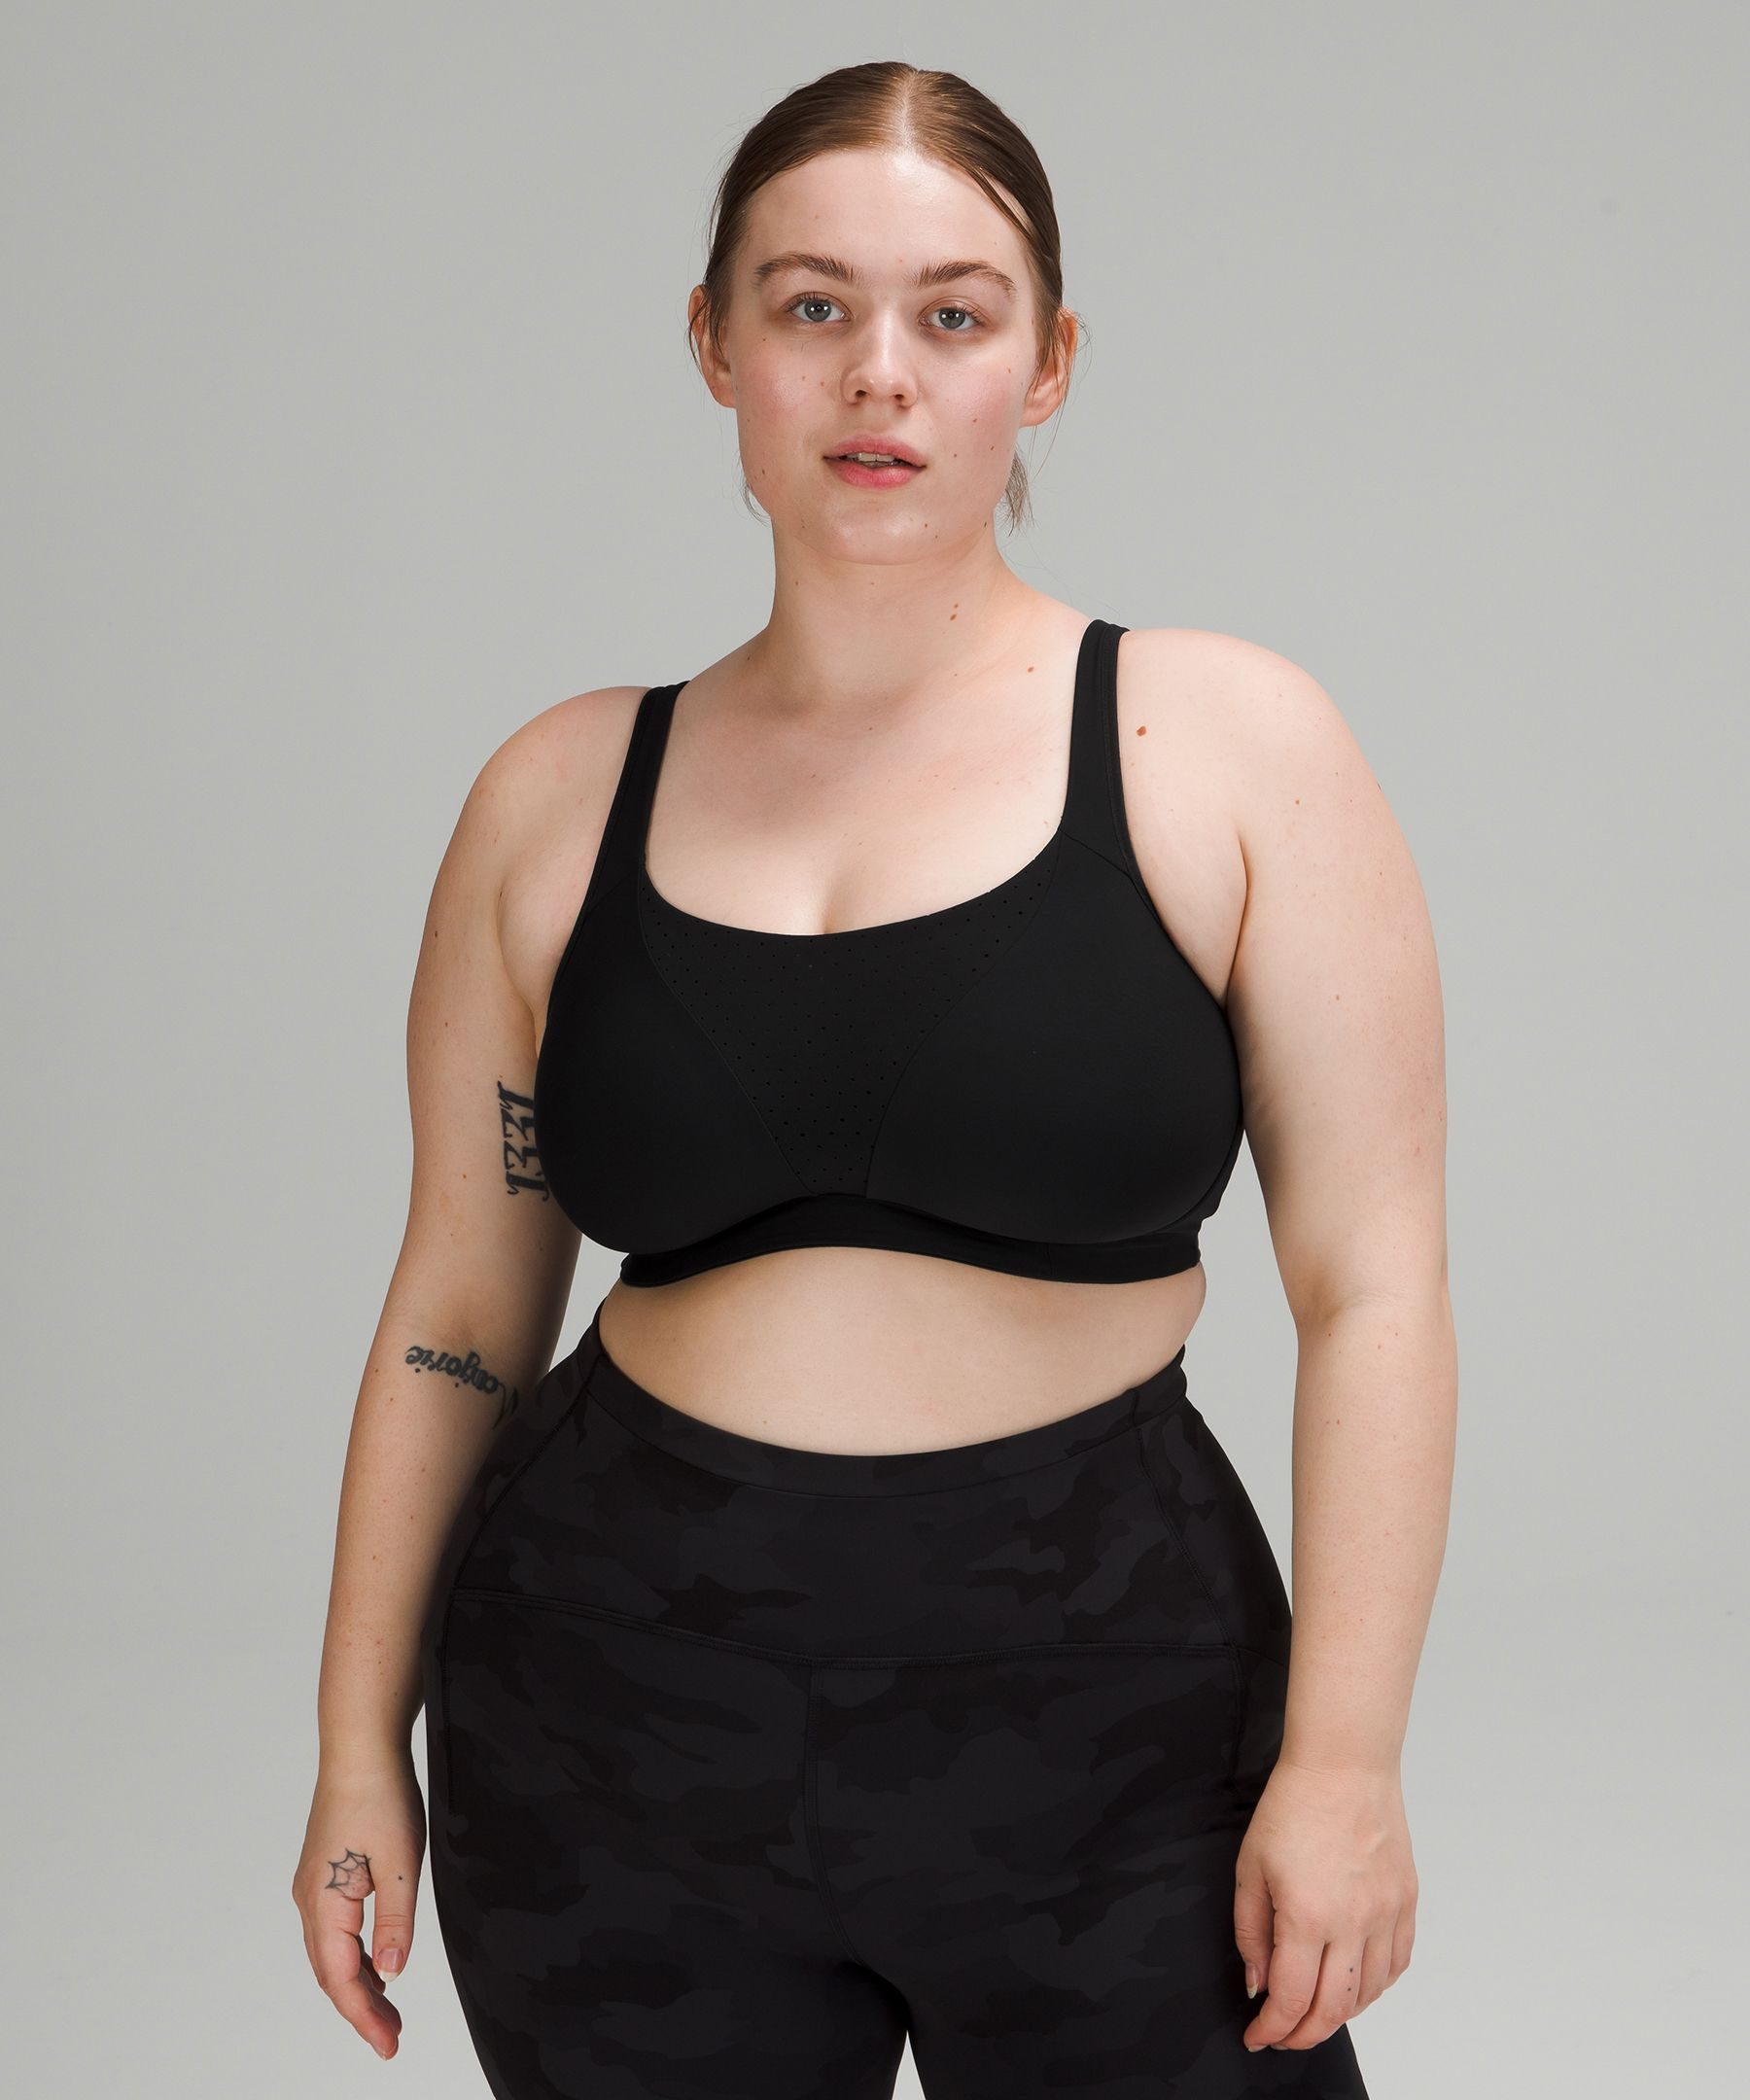 We've got a full range of sports bras for all athletic activities,including yoga and running. Complimentary shipping to Canada and the US.